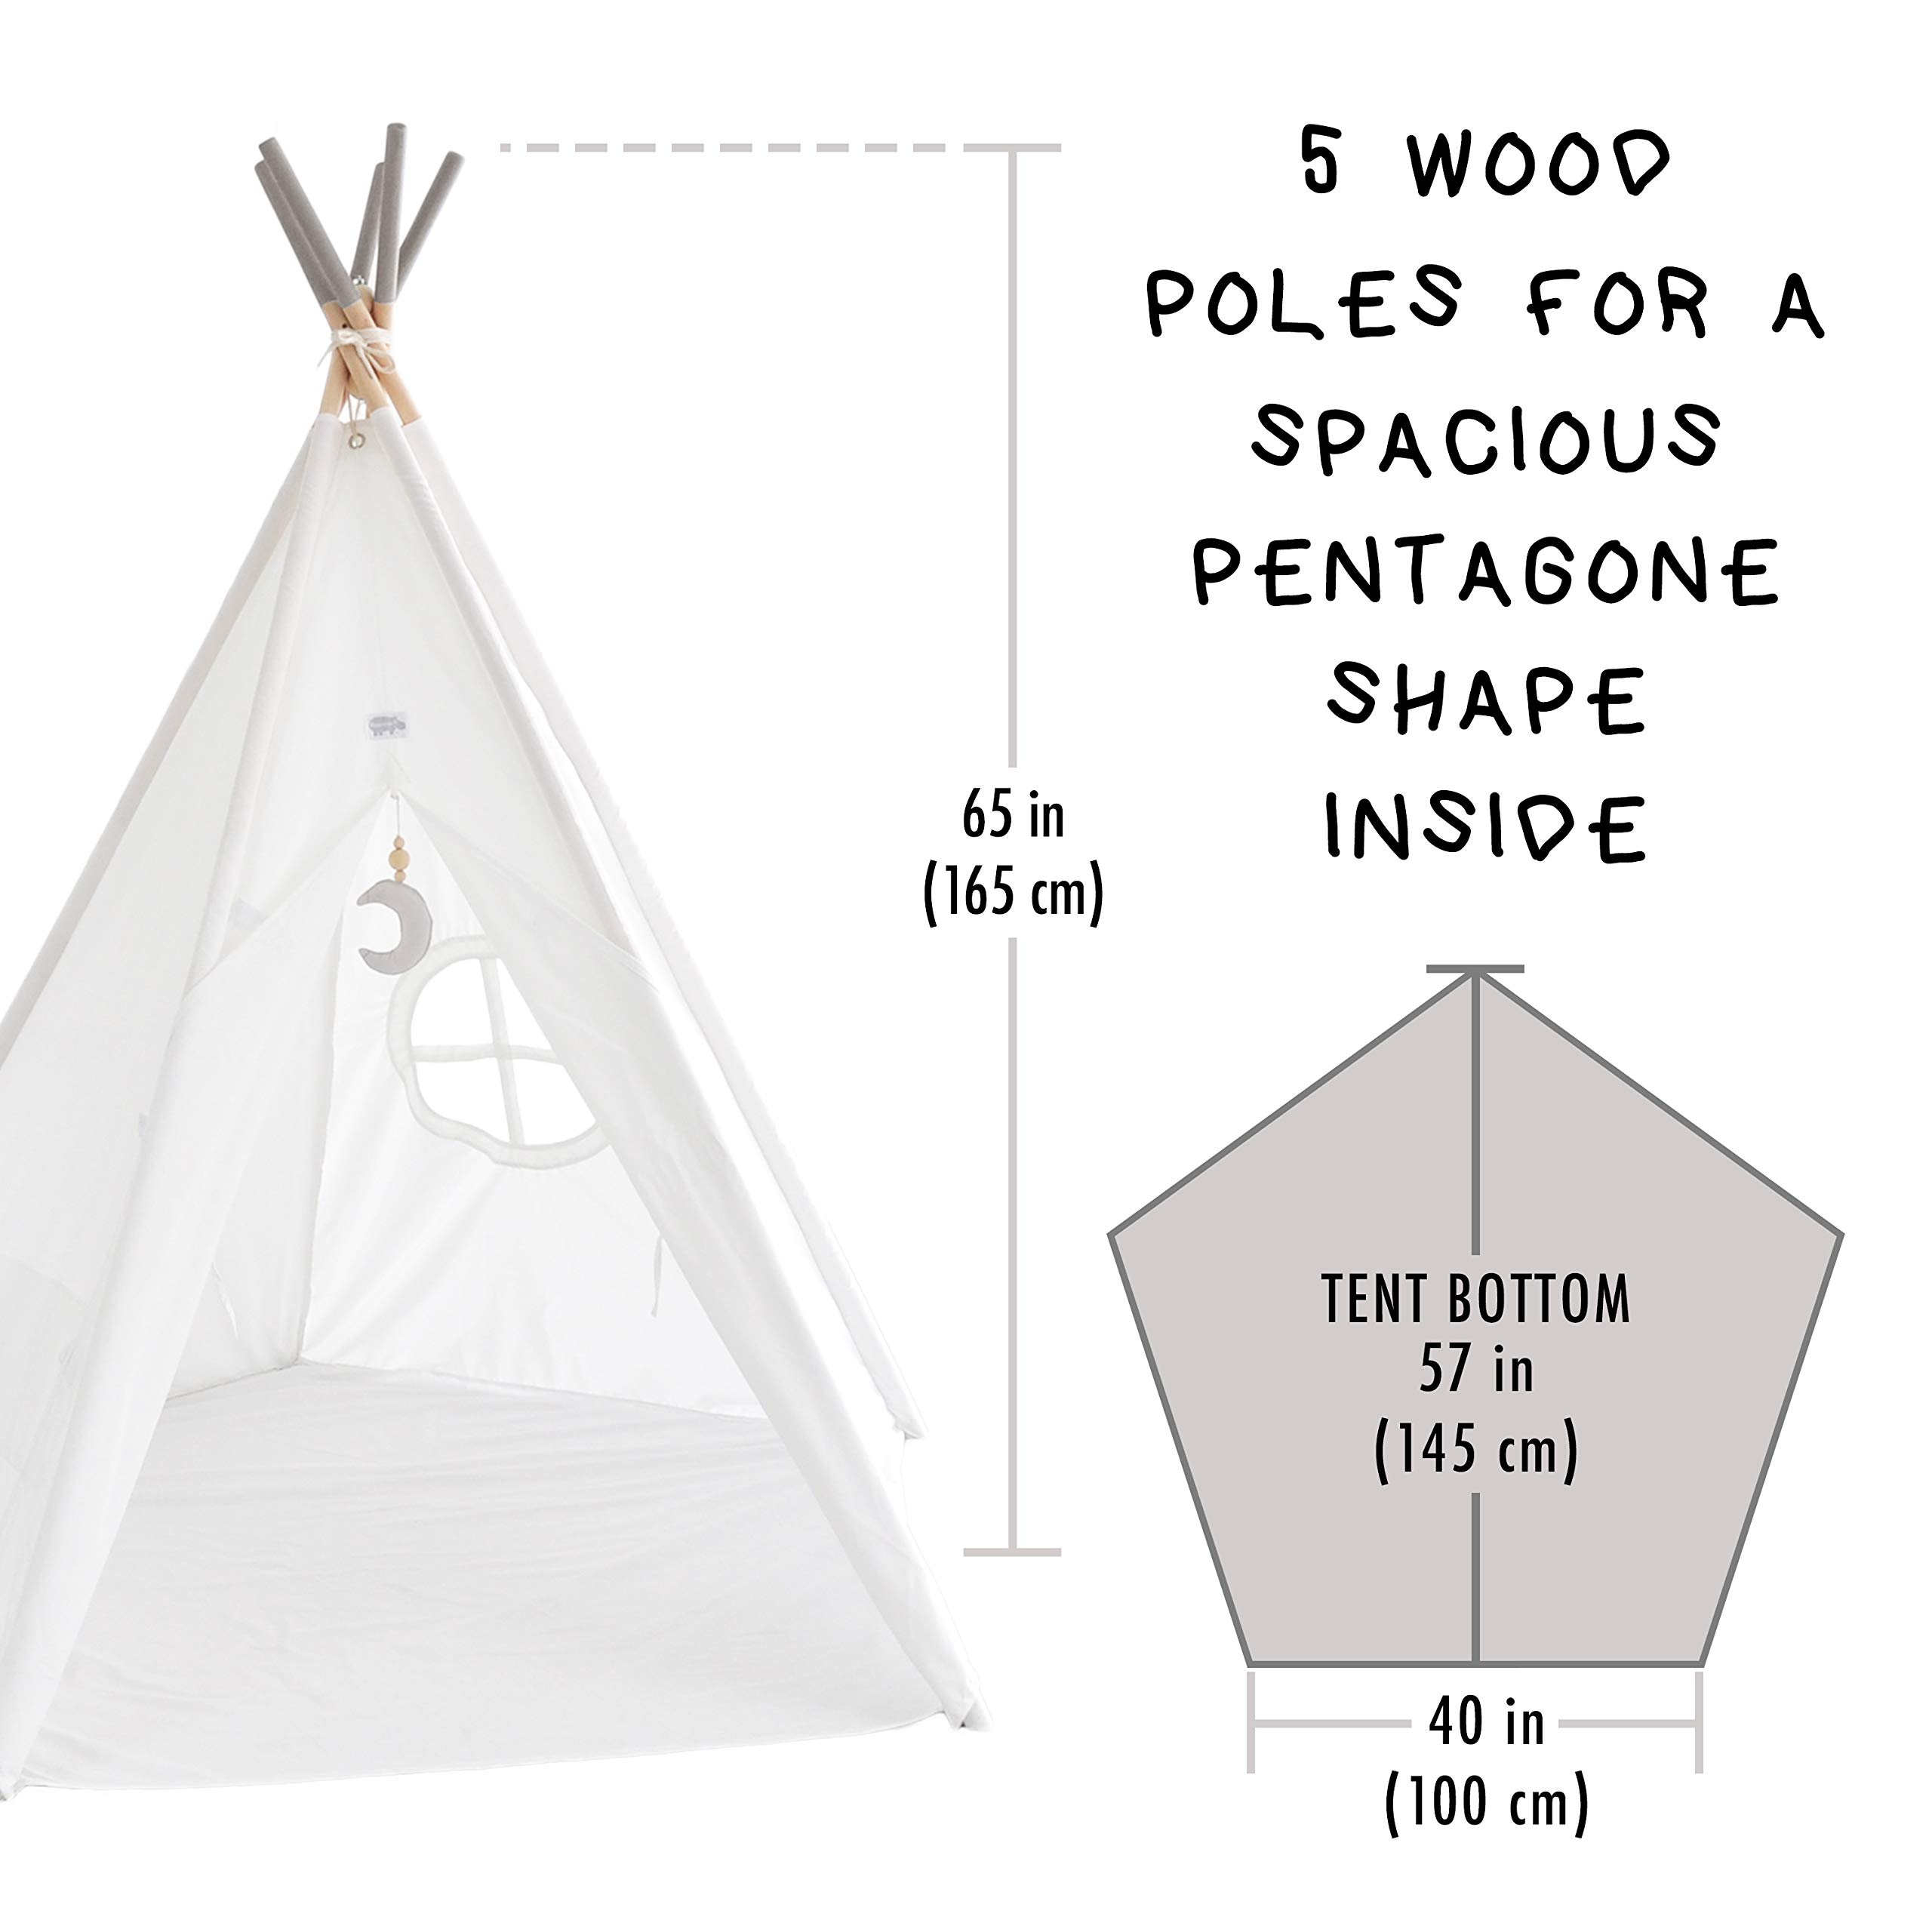 Hippococo Teepee Tent for Kids: Large Sturdy Quality 5 Poles Play House Foldable Indoor Outdoor Tipi Tents, True White Canvas, Floor Mat, Grey Moon Accessory, Family Fun Crafts eBook Included (Grey) by Hippococo (Image #5)